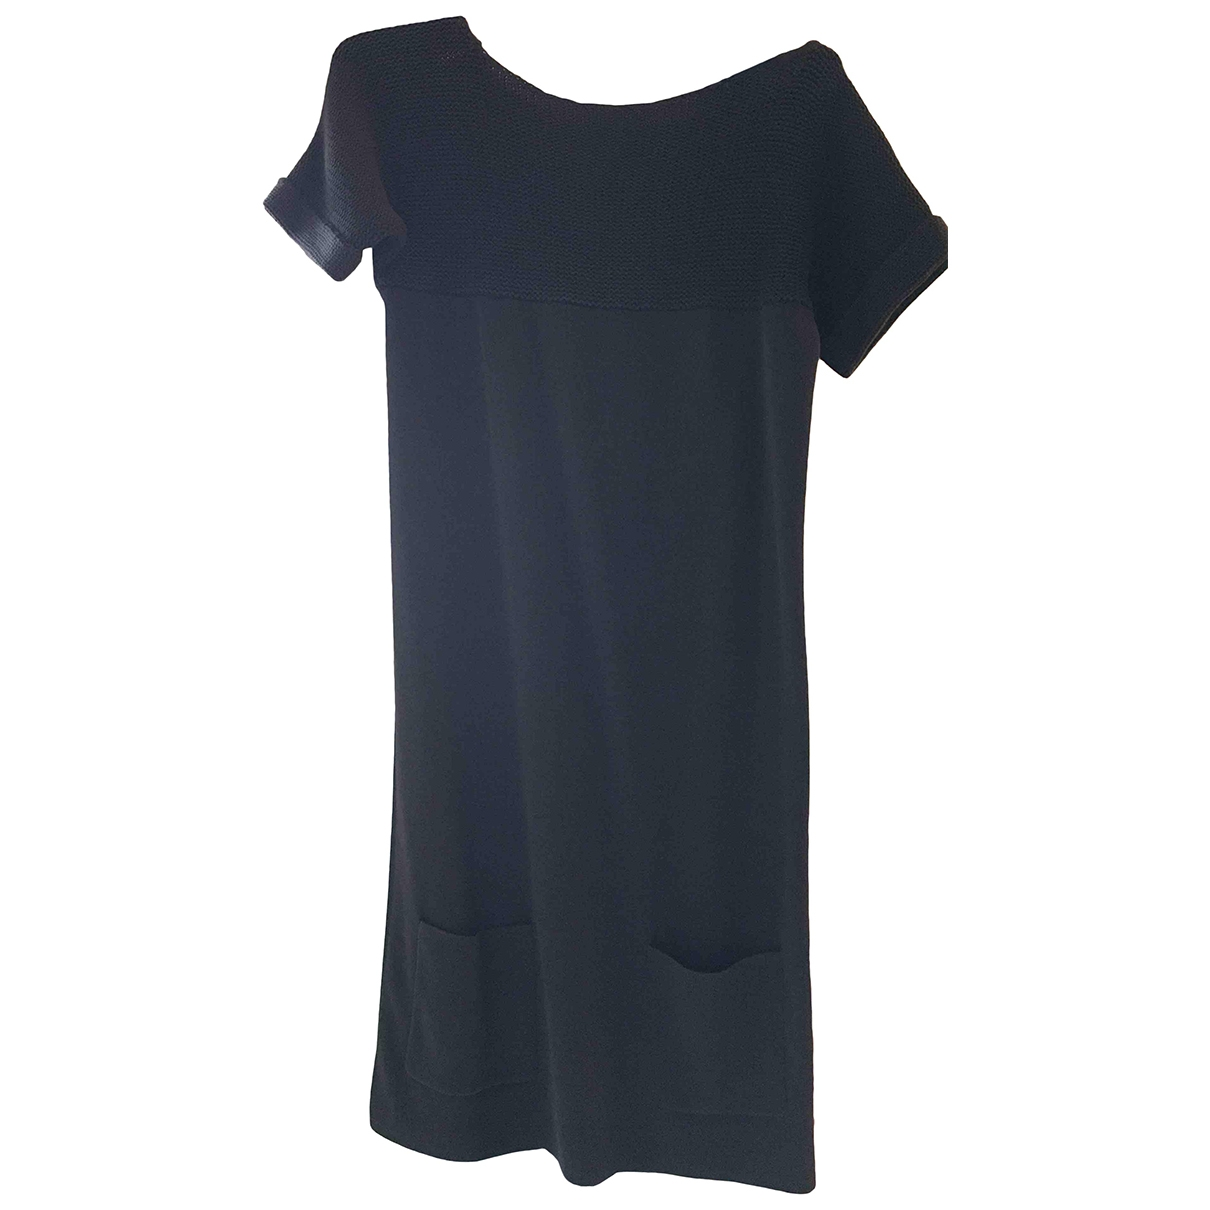 Sonia By Sonia Rykiel \N Anthracite Cotton dress for Women 36 FR